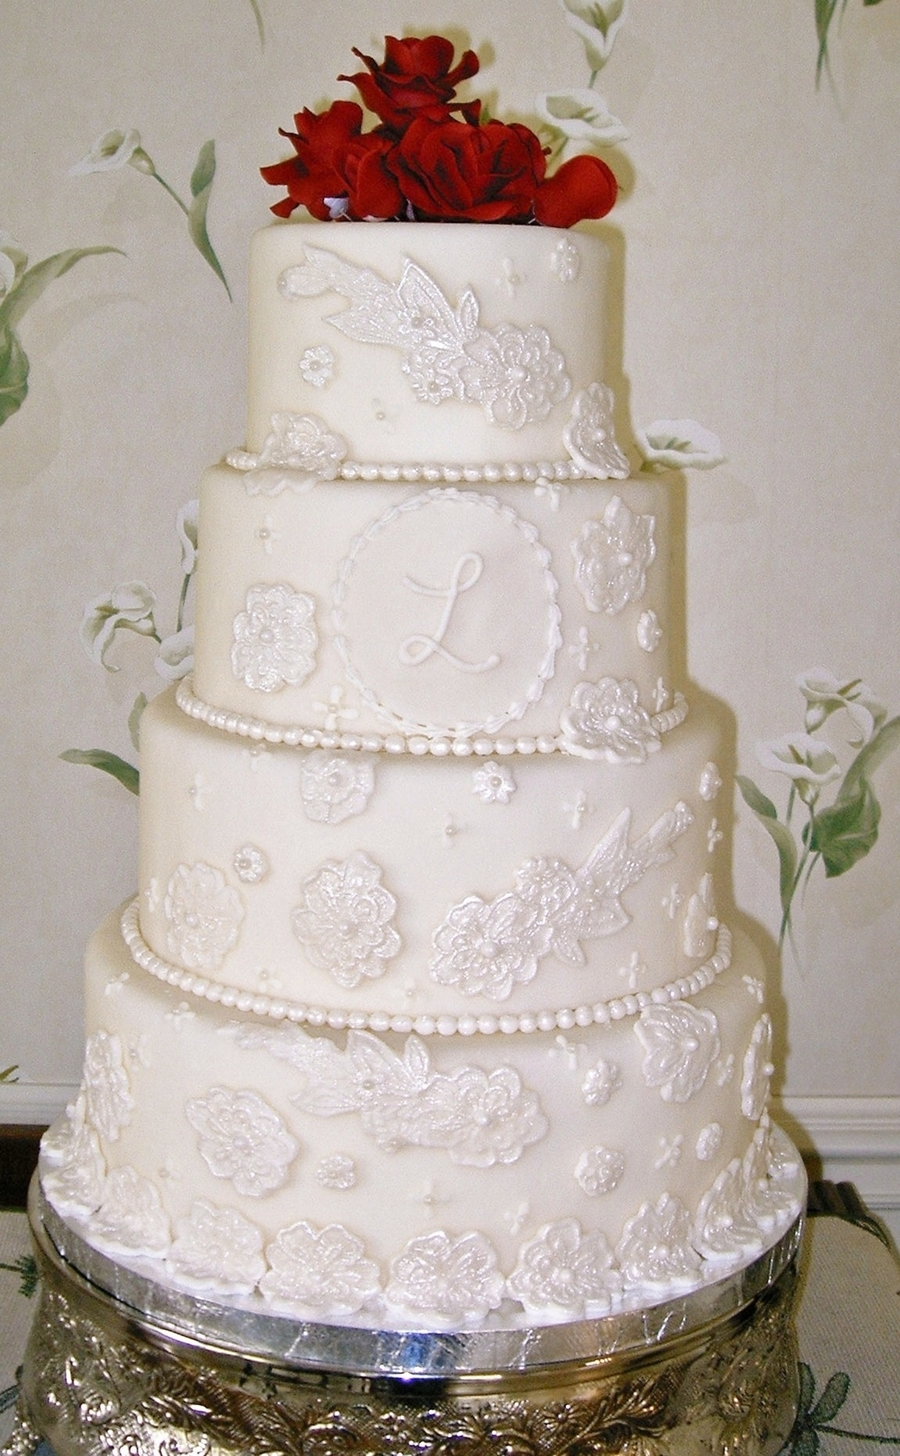 Lace Applique on Cake Central